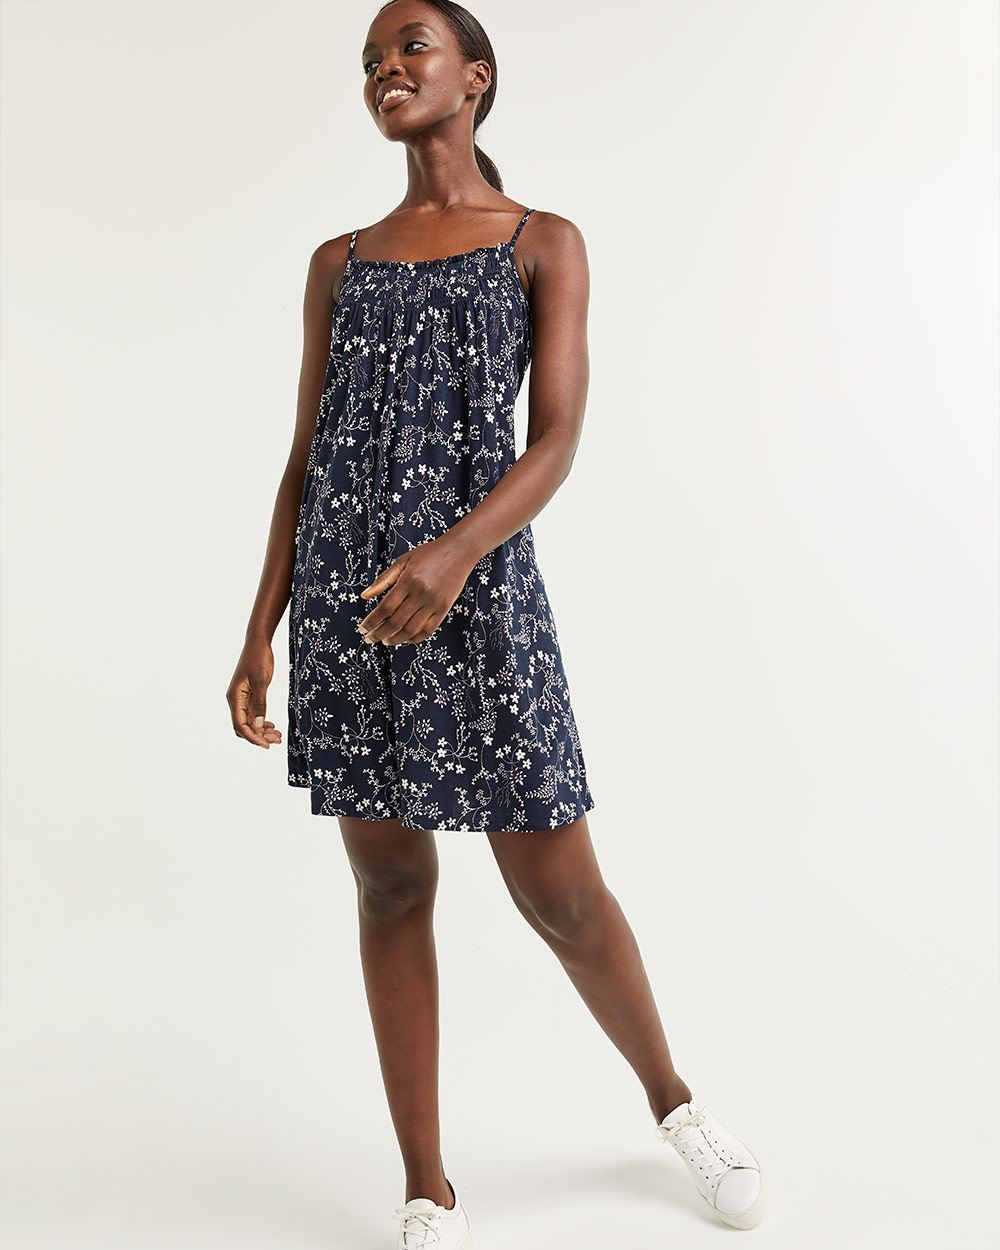 Sleeveless Printed Swing Dress with Smocking